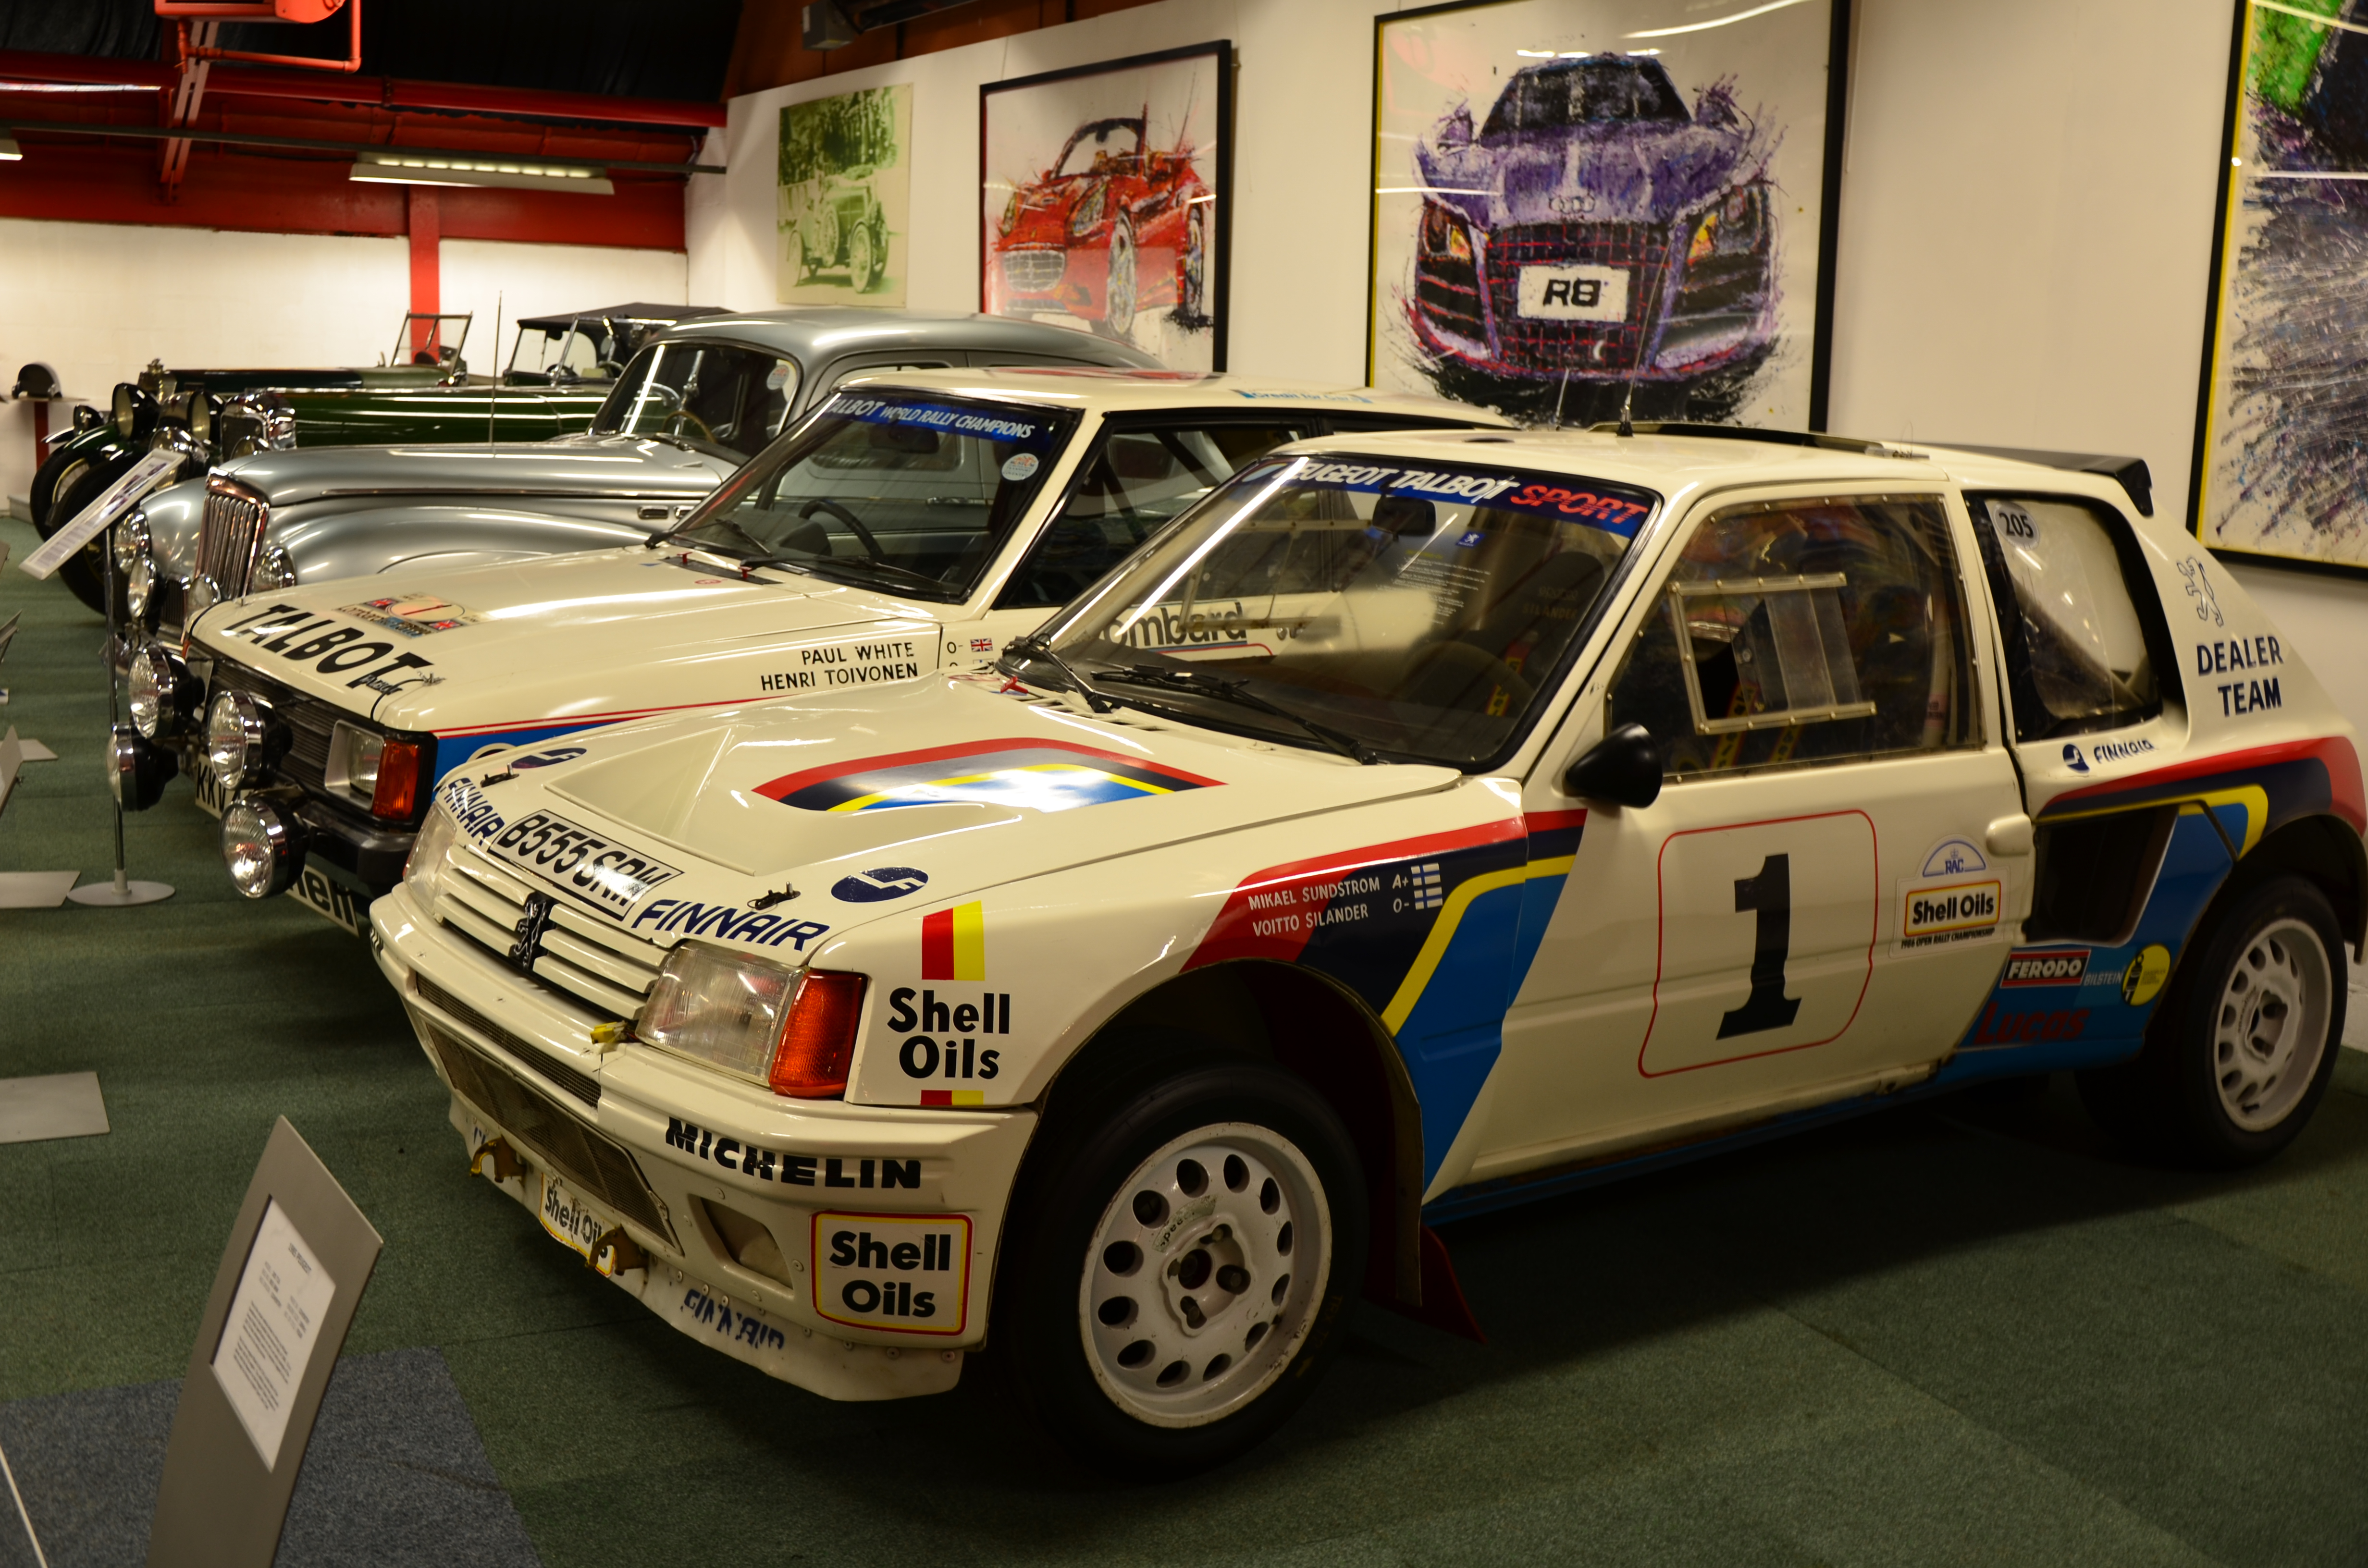 File:Peugeot 205 rally car at Coventry Motor Museum.jpg - Wikimedia ...